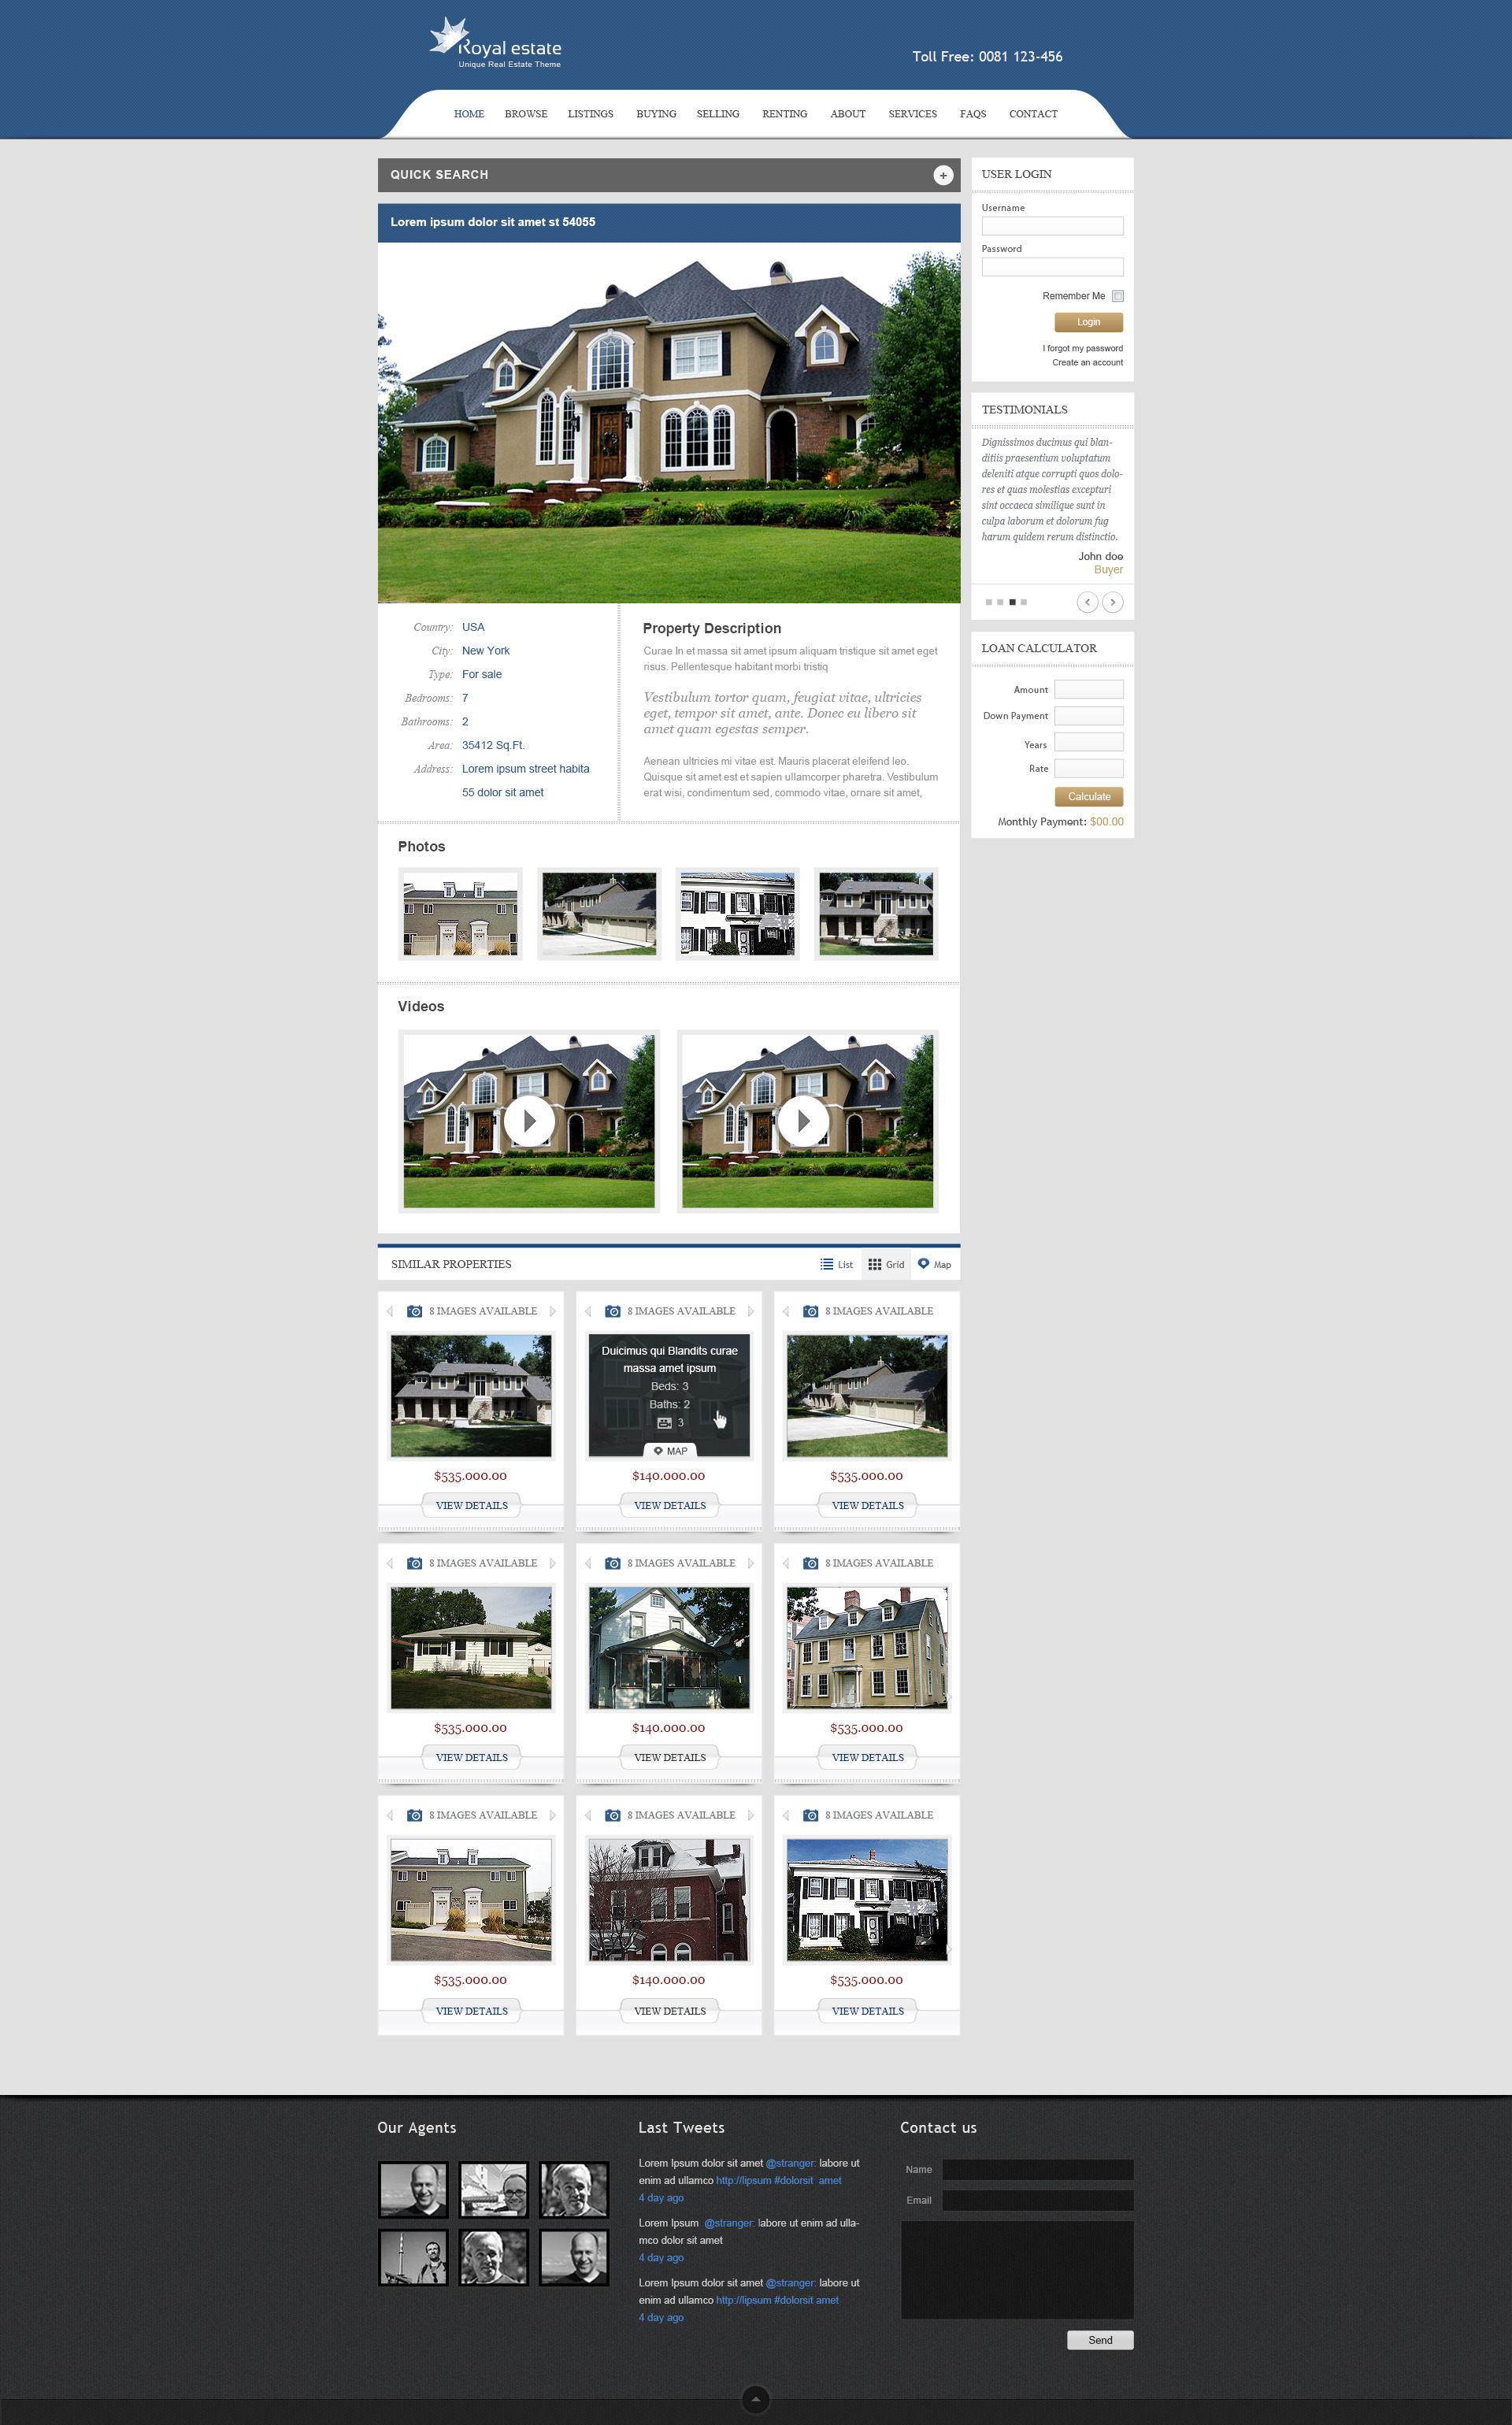 Royal Estate - Premium Wordpress Real Estate Theme